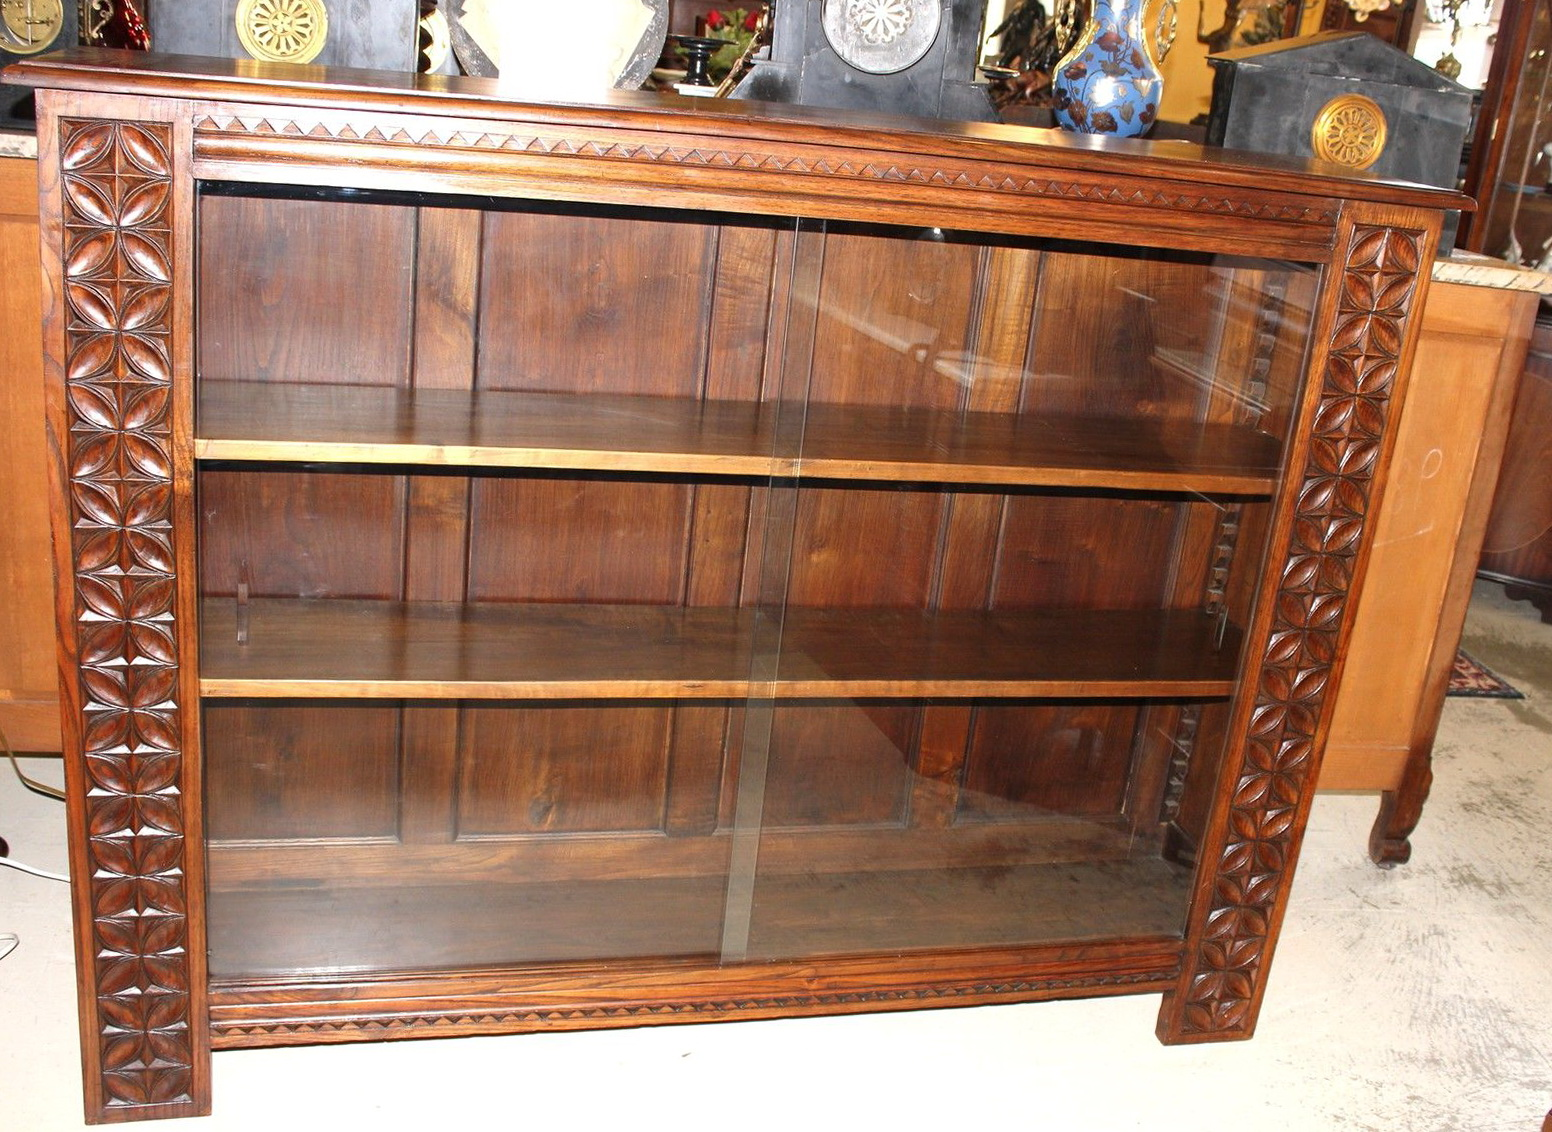 Antique Bookshelves With Glass Doors